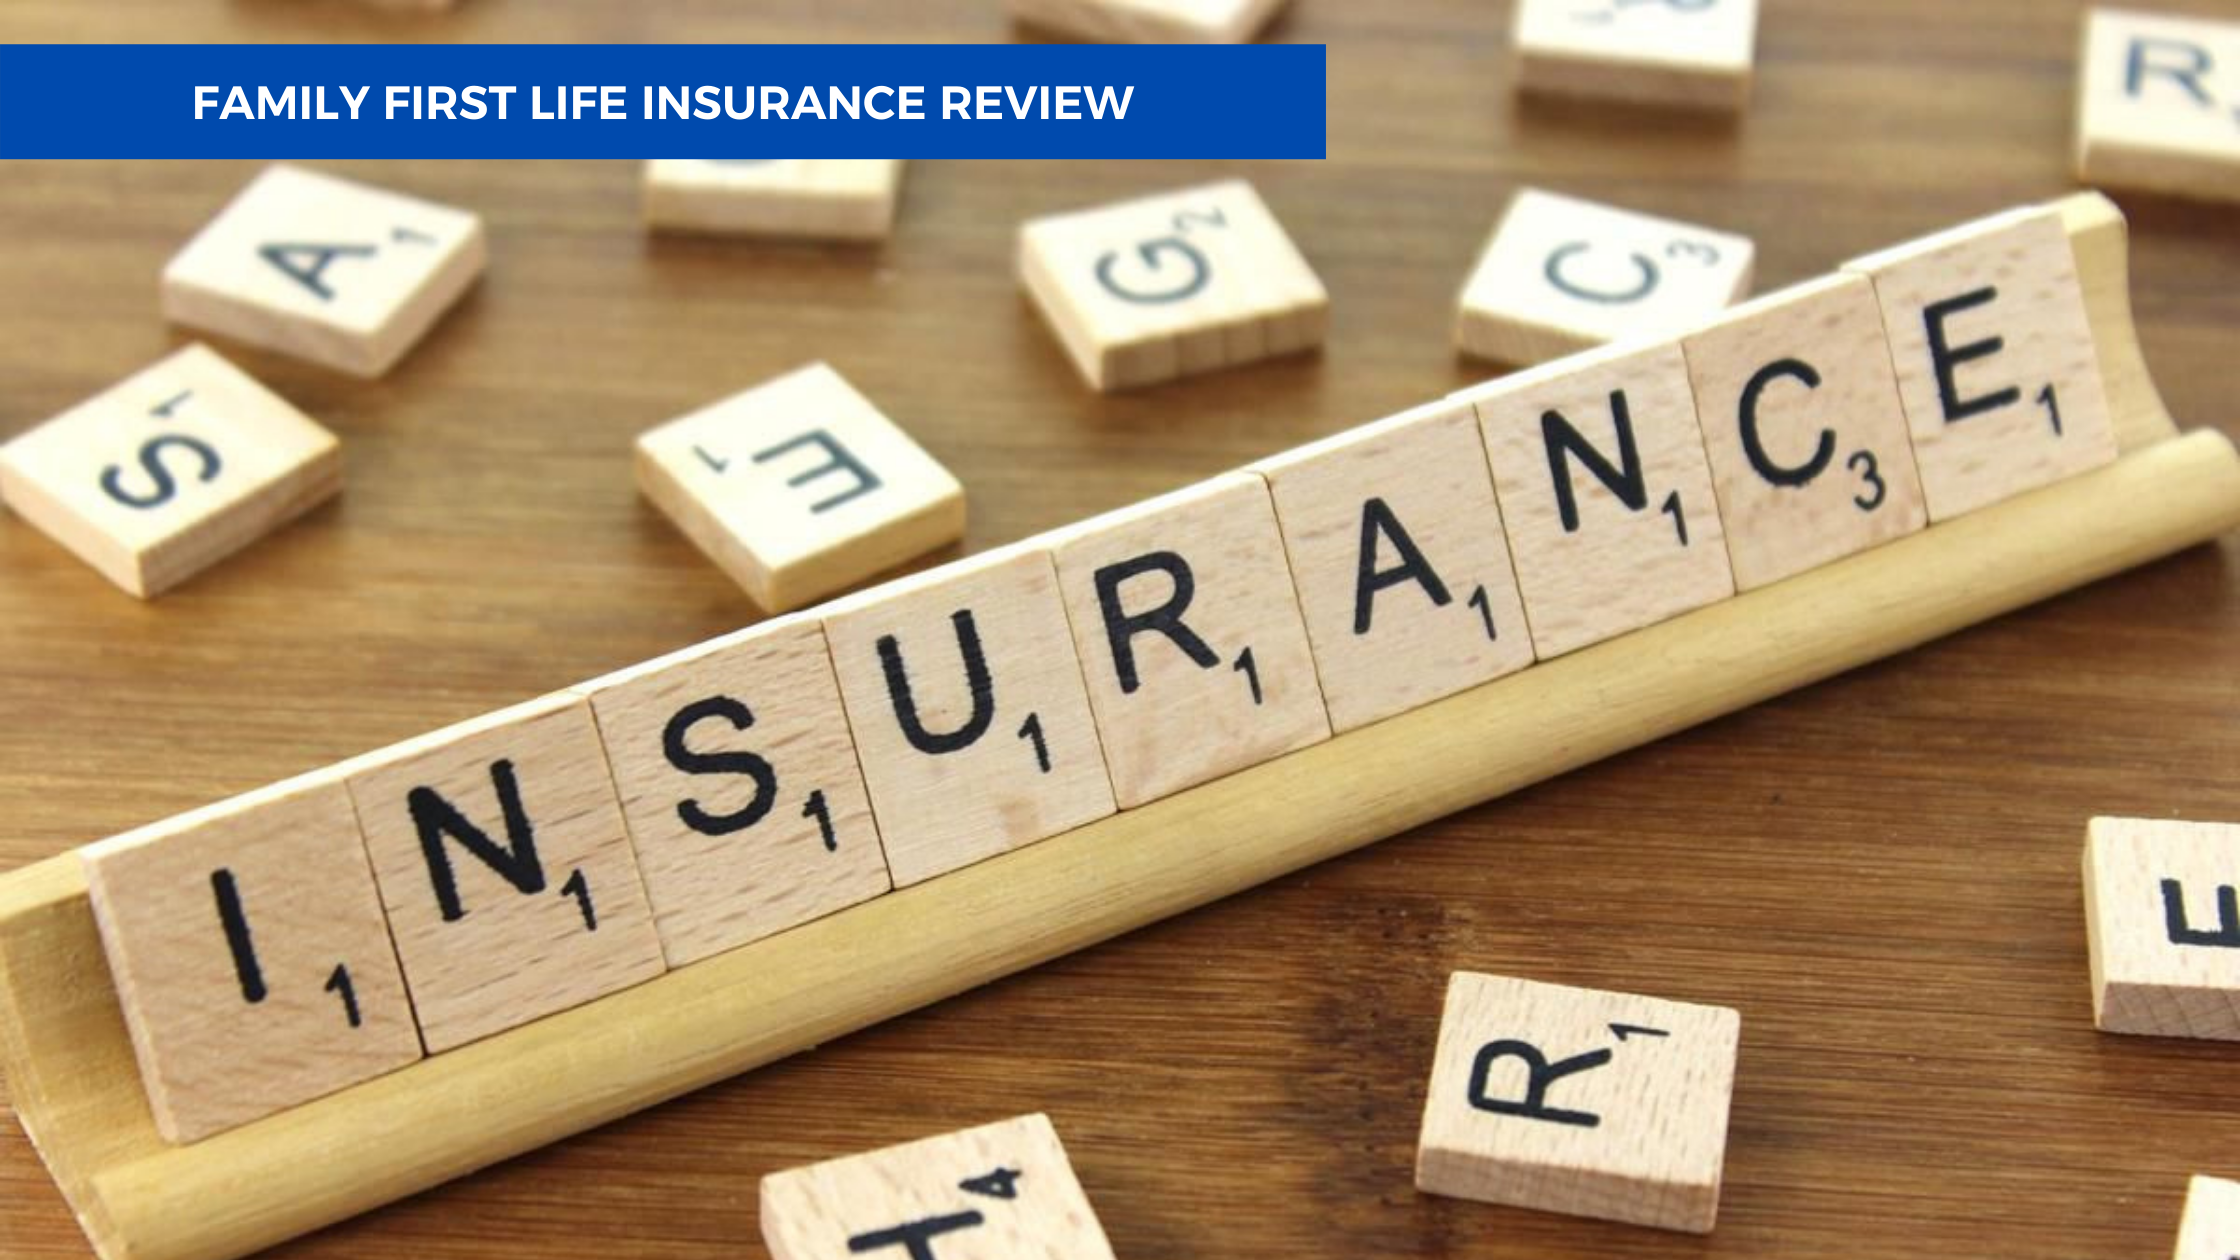 Family First Life Insurance